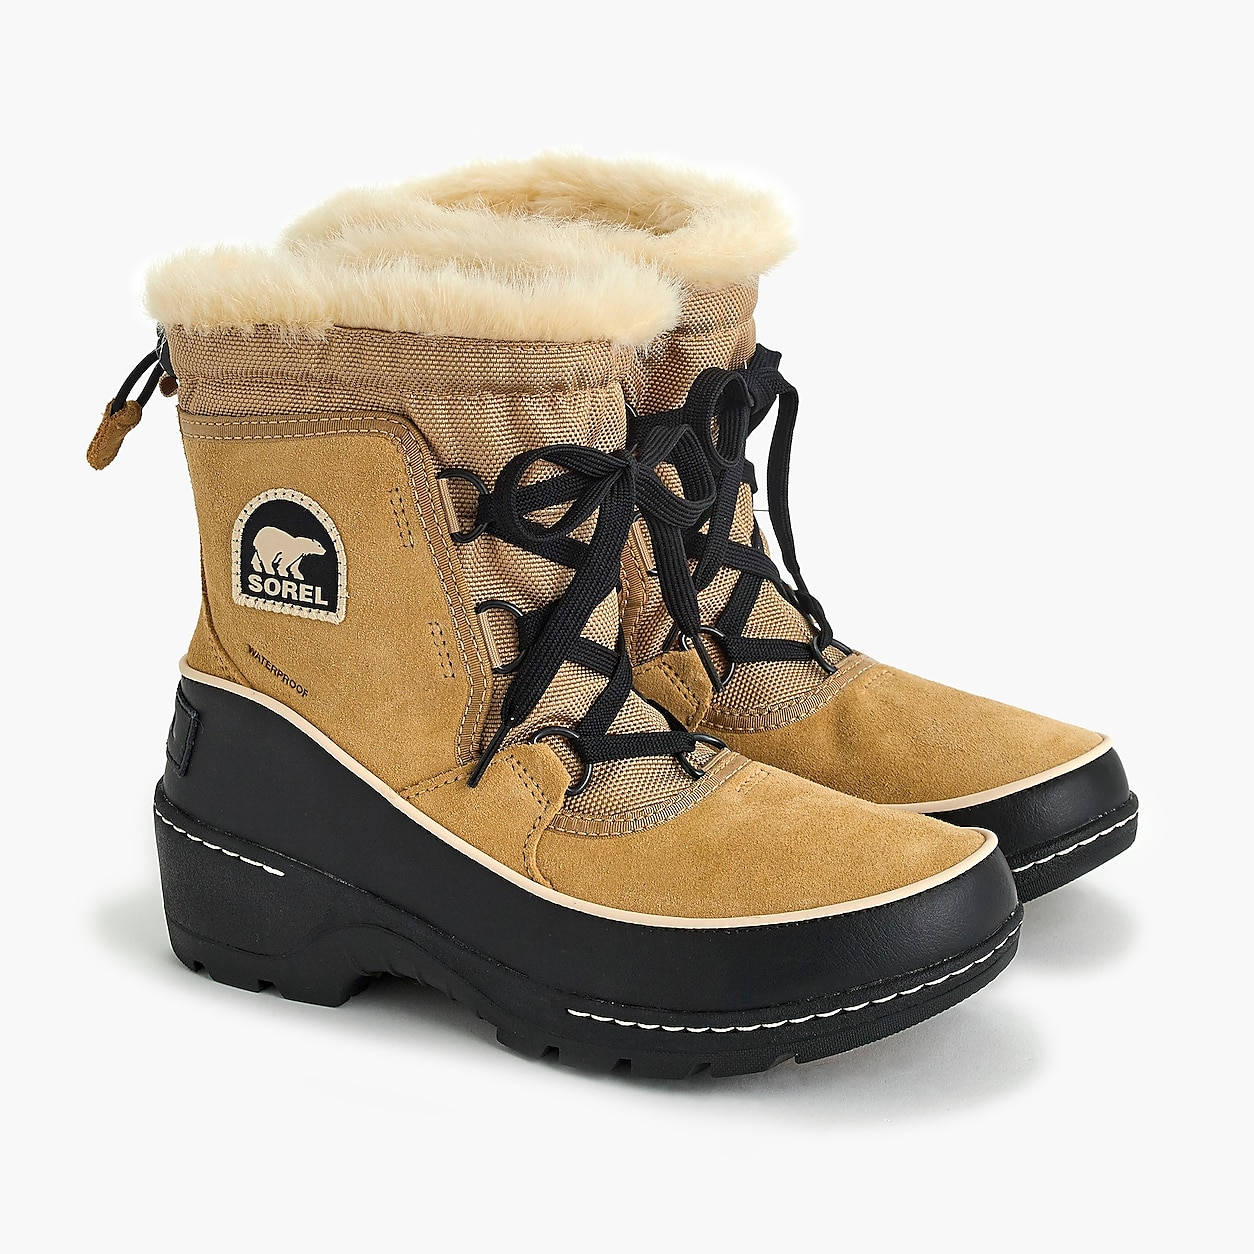 bb81d05bc X Sorel Tivoli Iii Boot | Shoes, Boots and Bags | Sorel tivoli ...